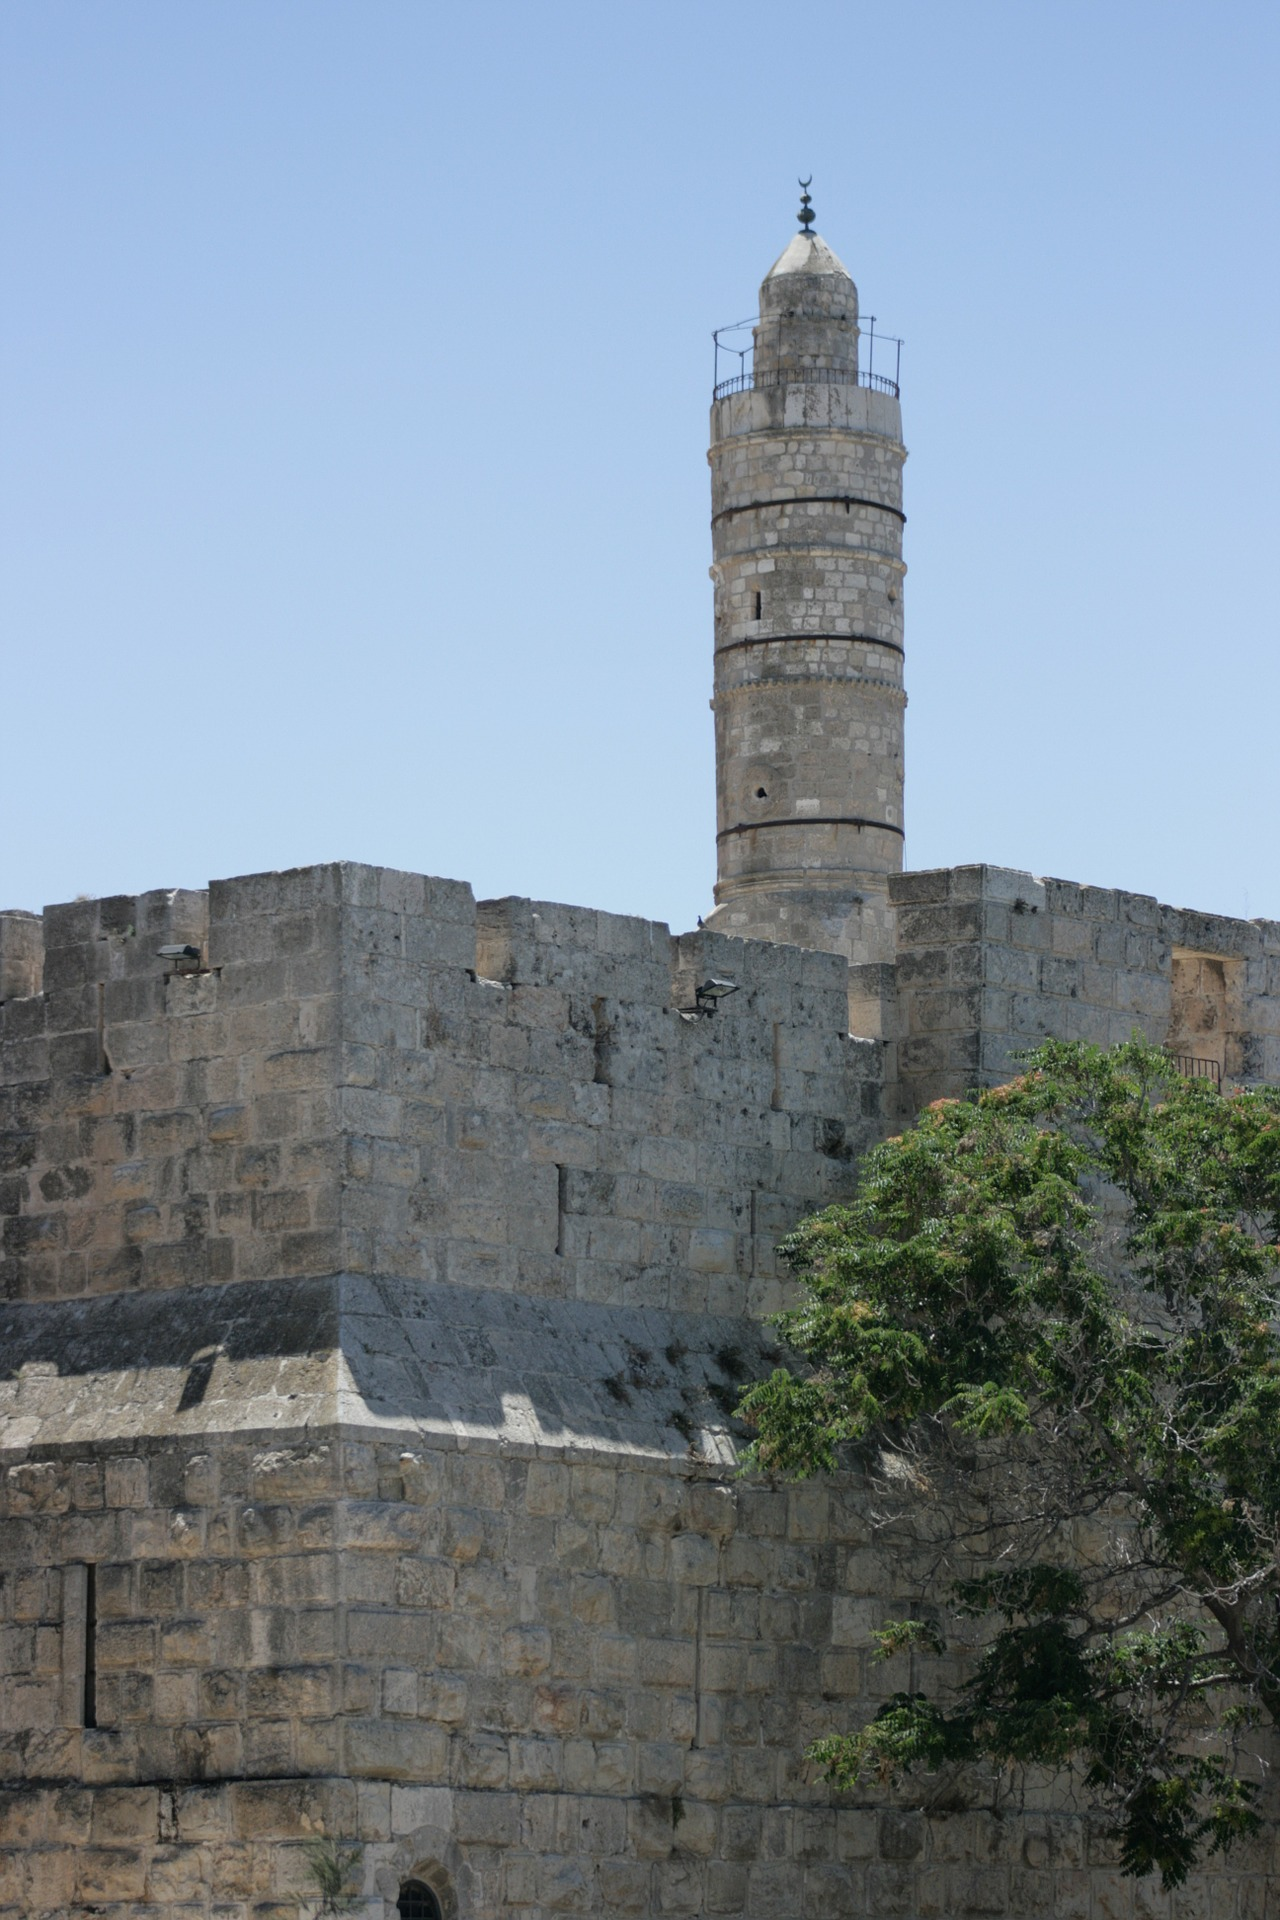 Tower of David, Jerusalem, Israel